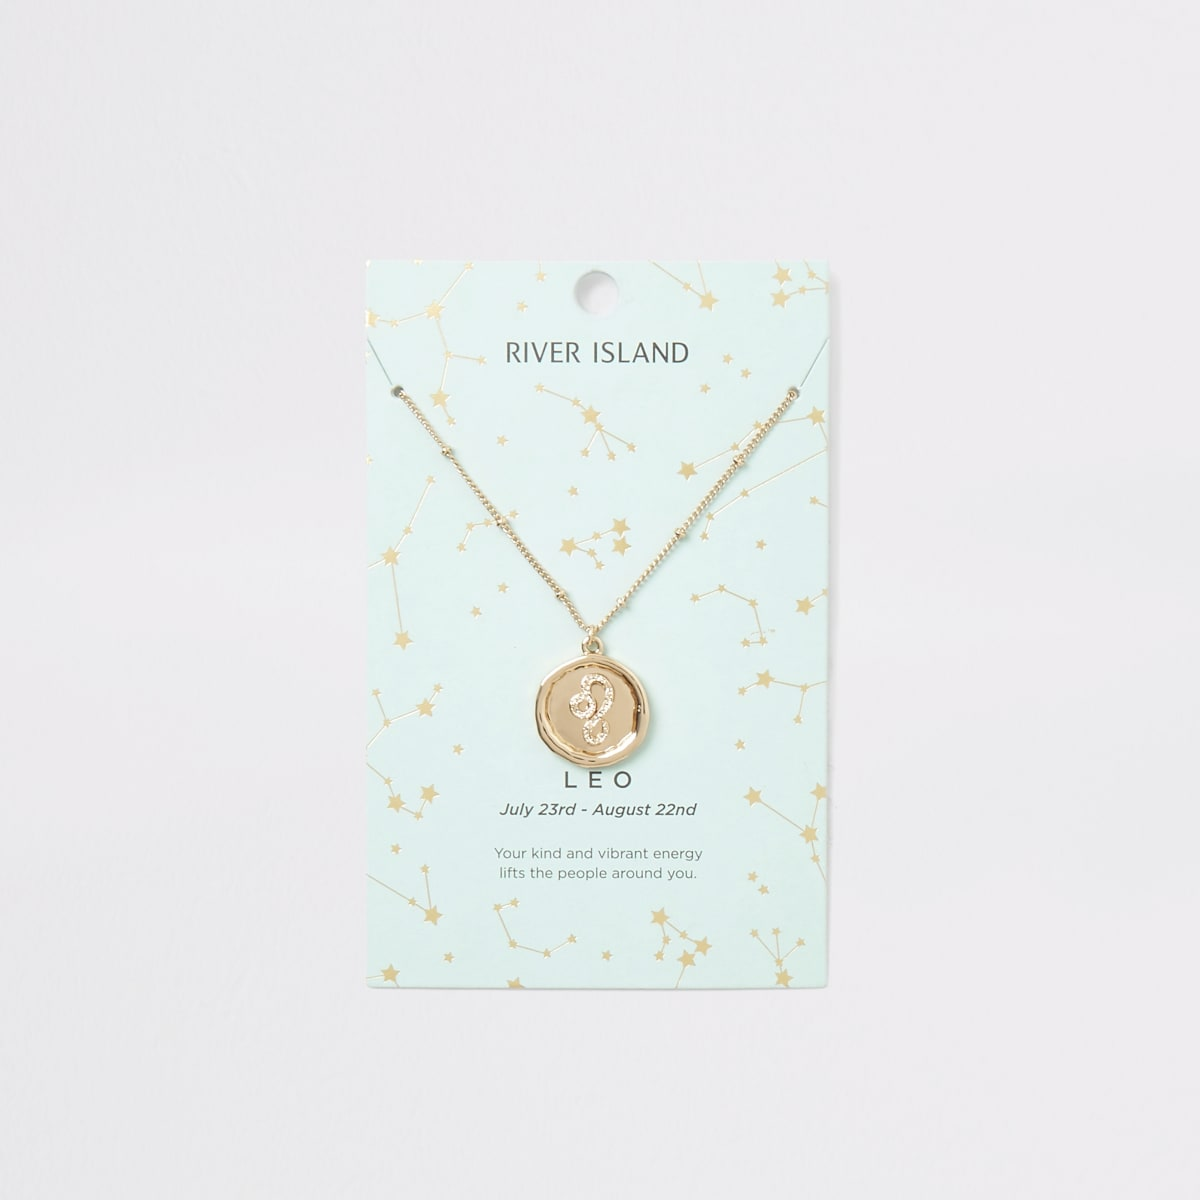 Leo zodiac sign gold colour necklace